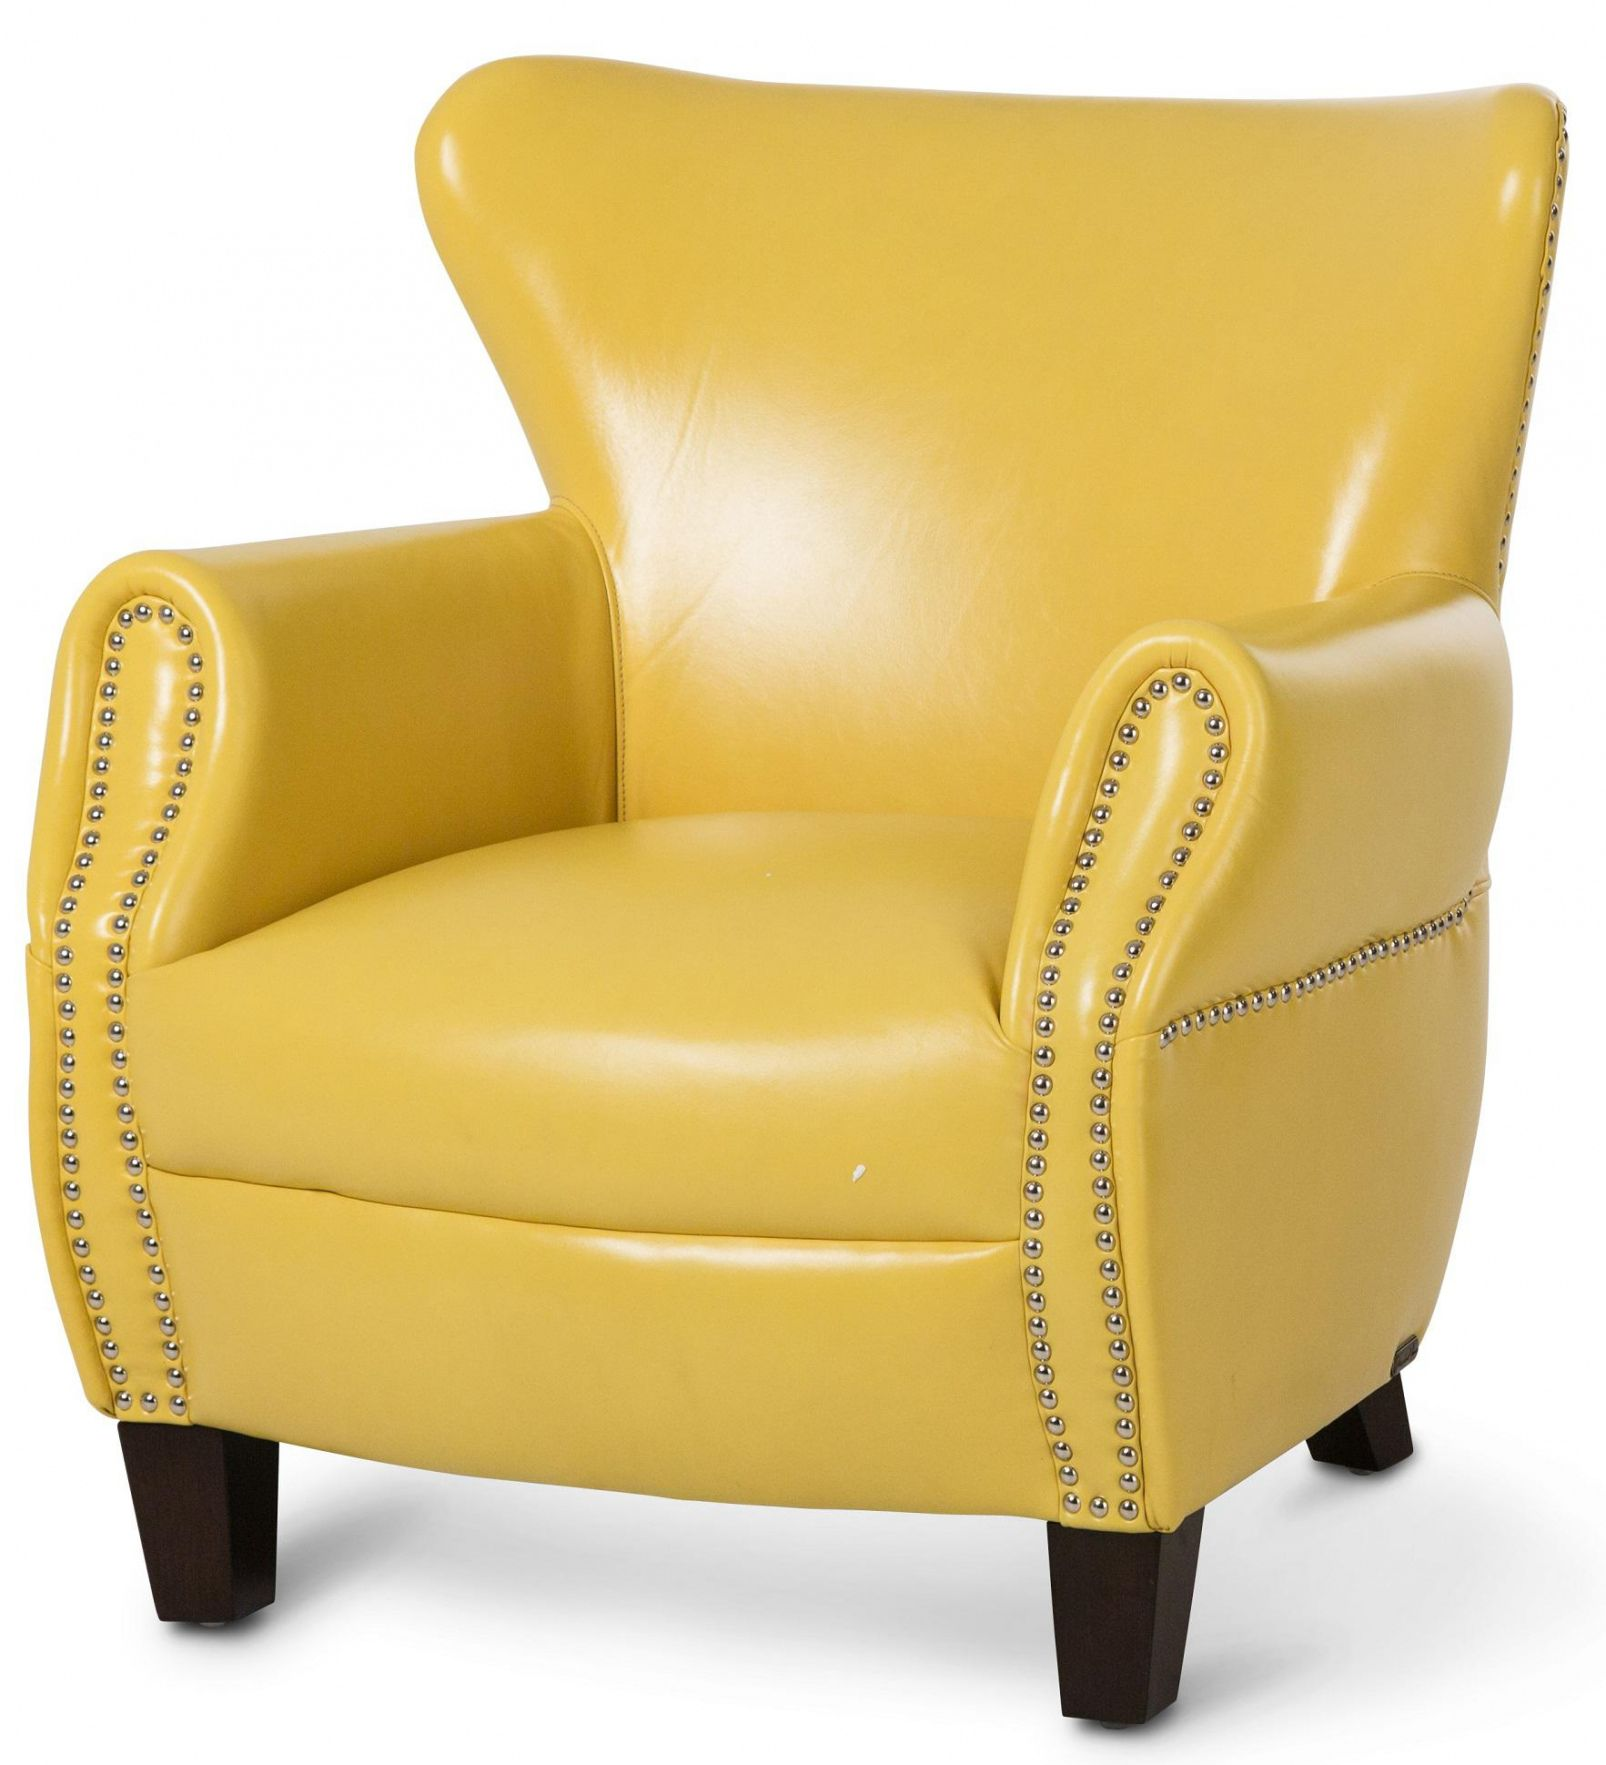 Park Art My WordPress Blog_Yellow Chair Covers For Sale